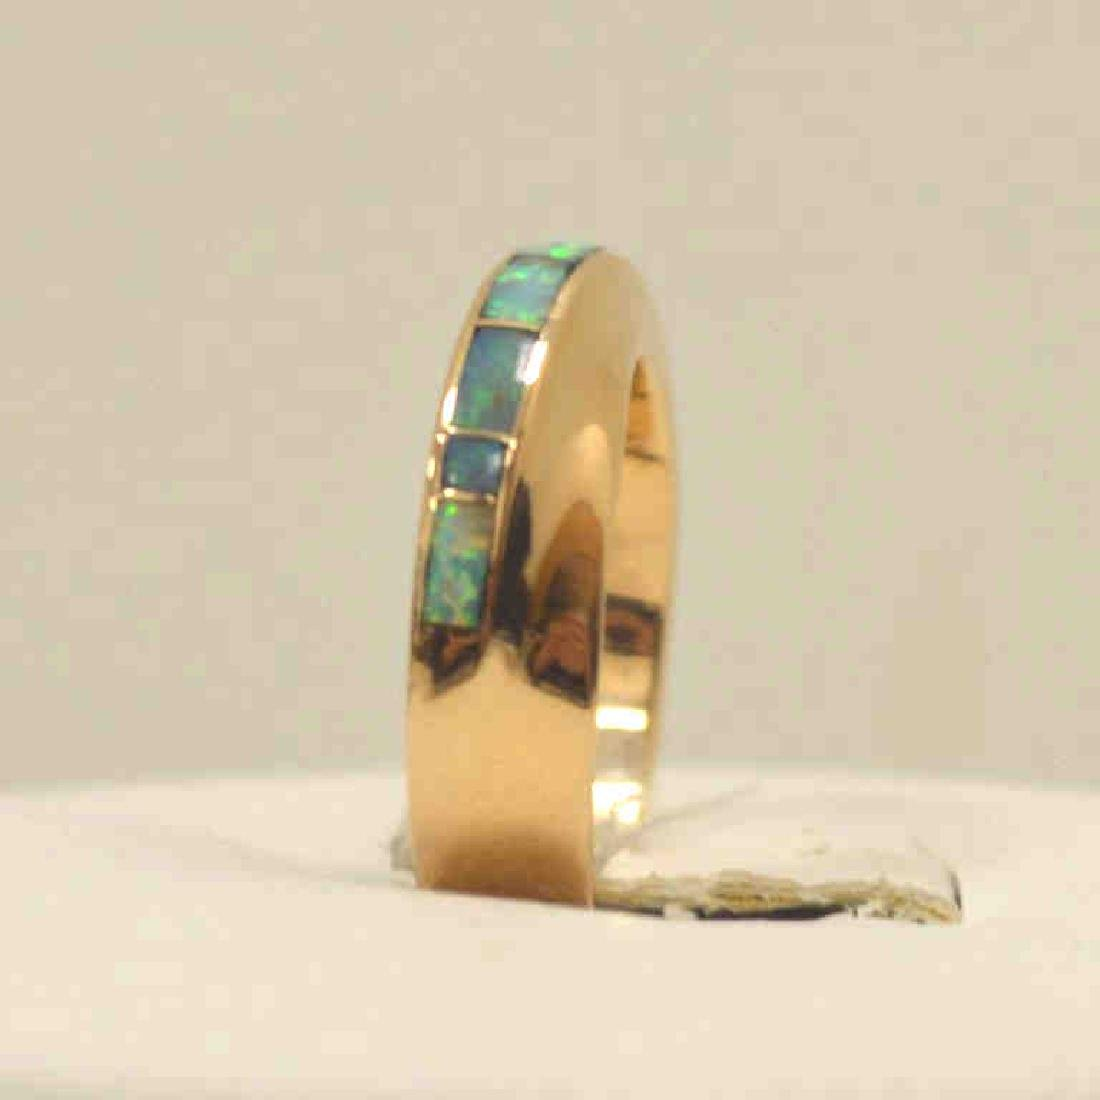 14kt yellow gold opal inlay ring - 4